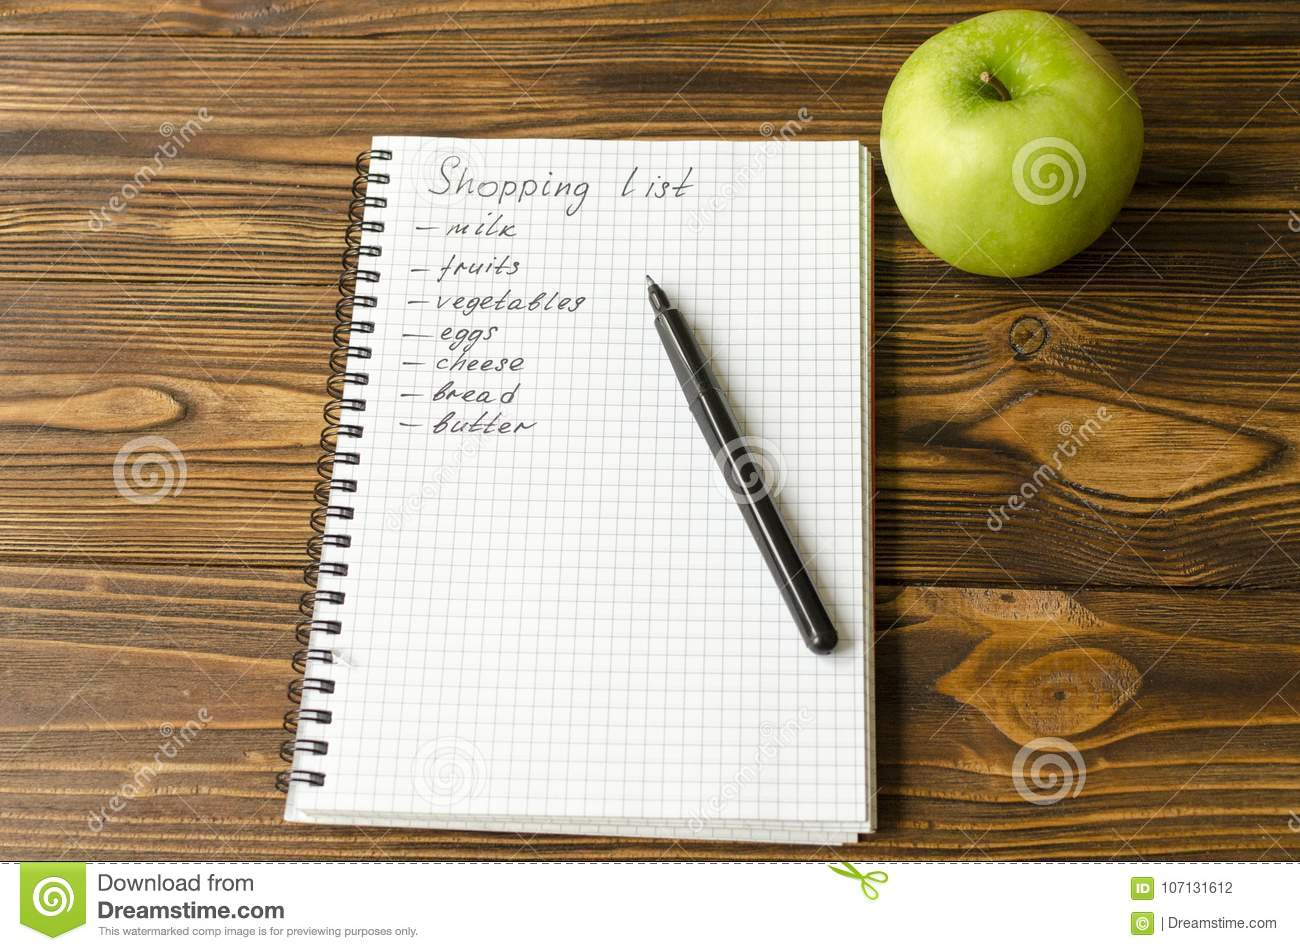 preparing the shopping list before going to buy the groceries stock